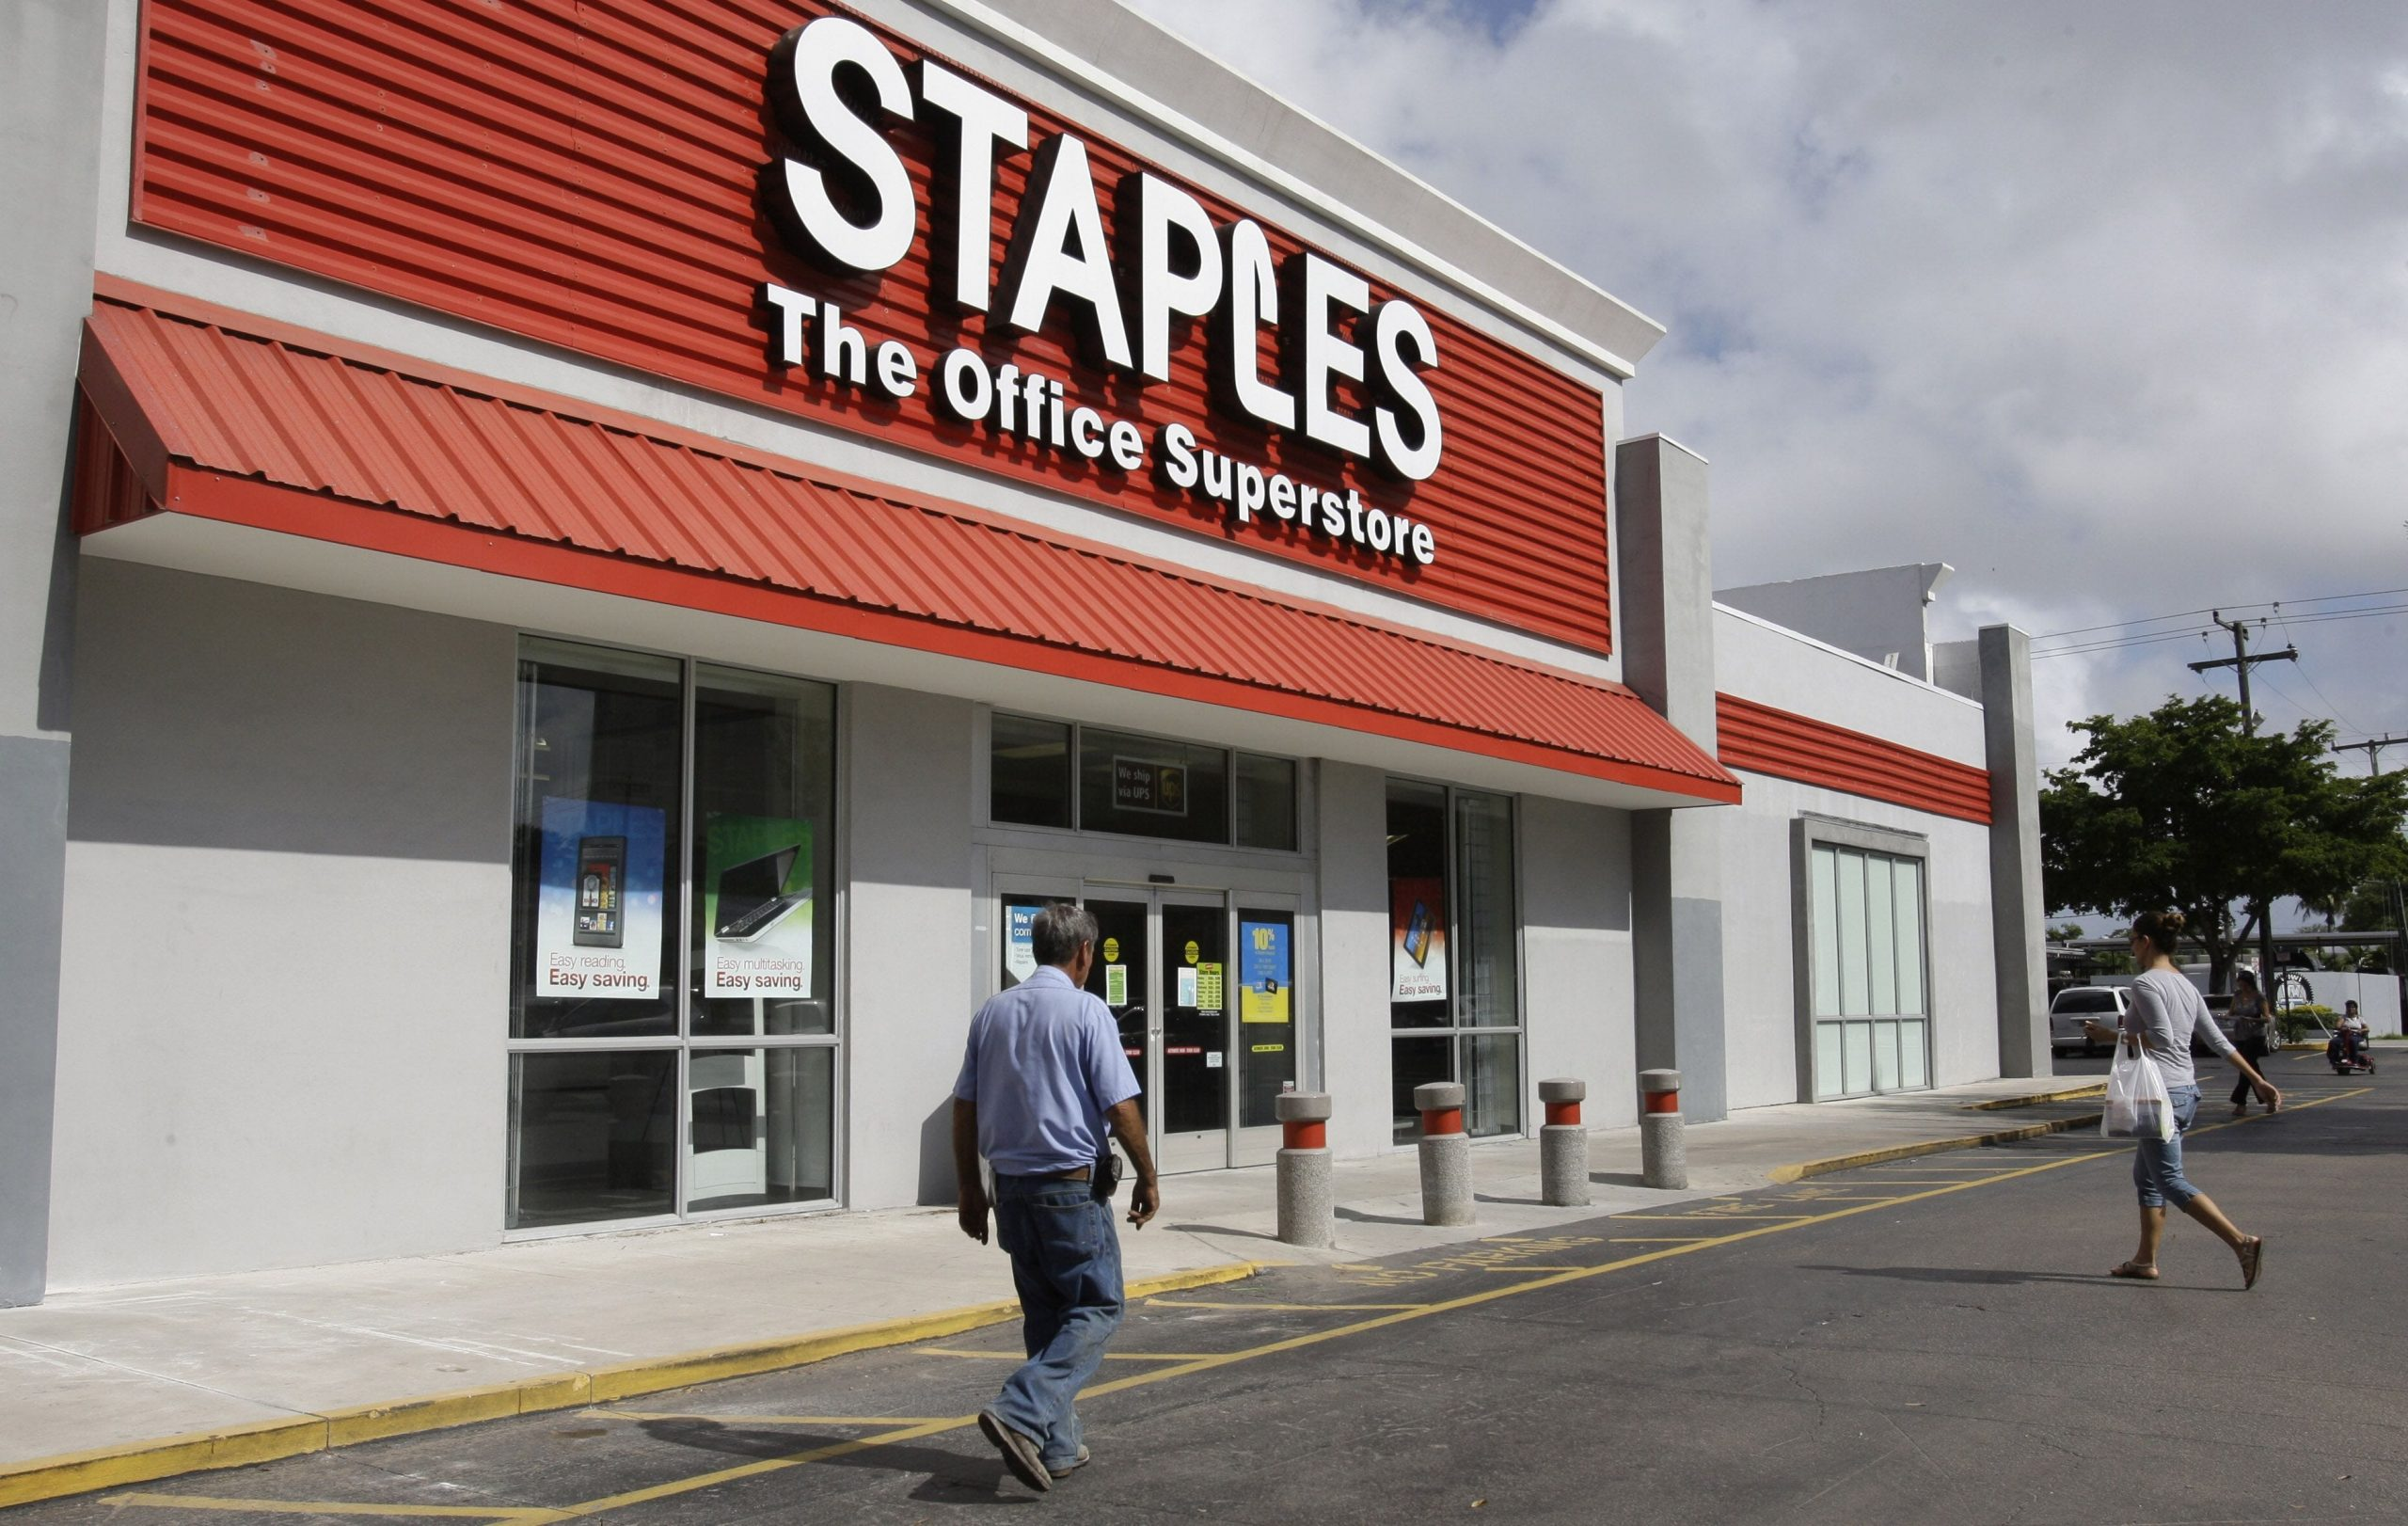 Staples proposes buying rival Office Depot for $2.1 billion after past merger attempts were blocked